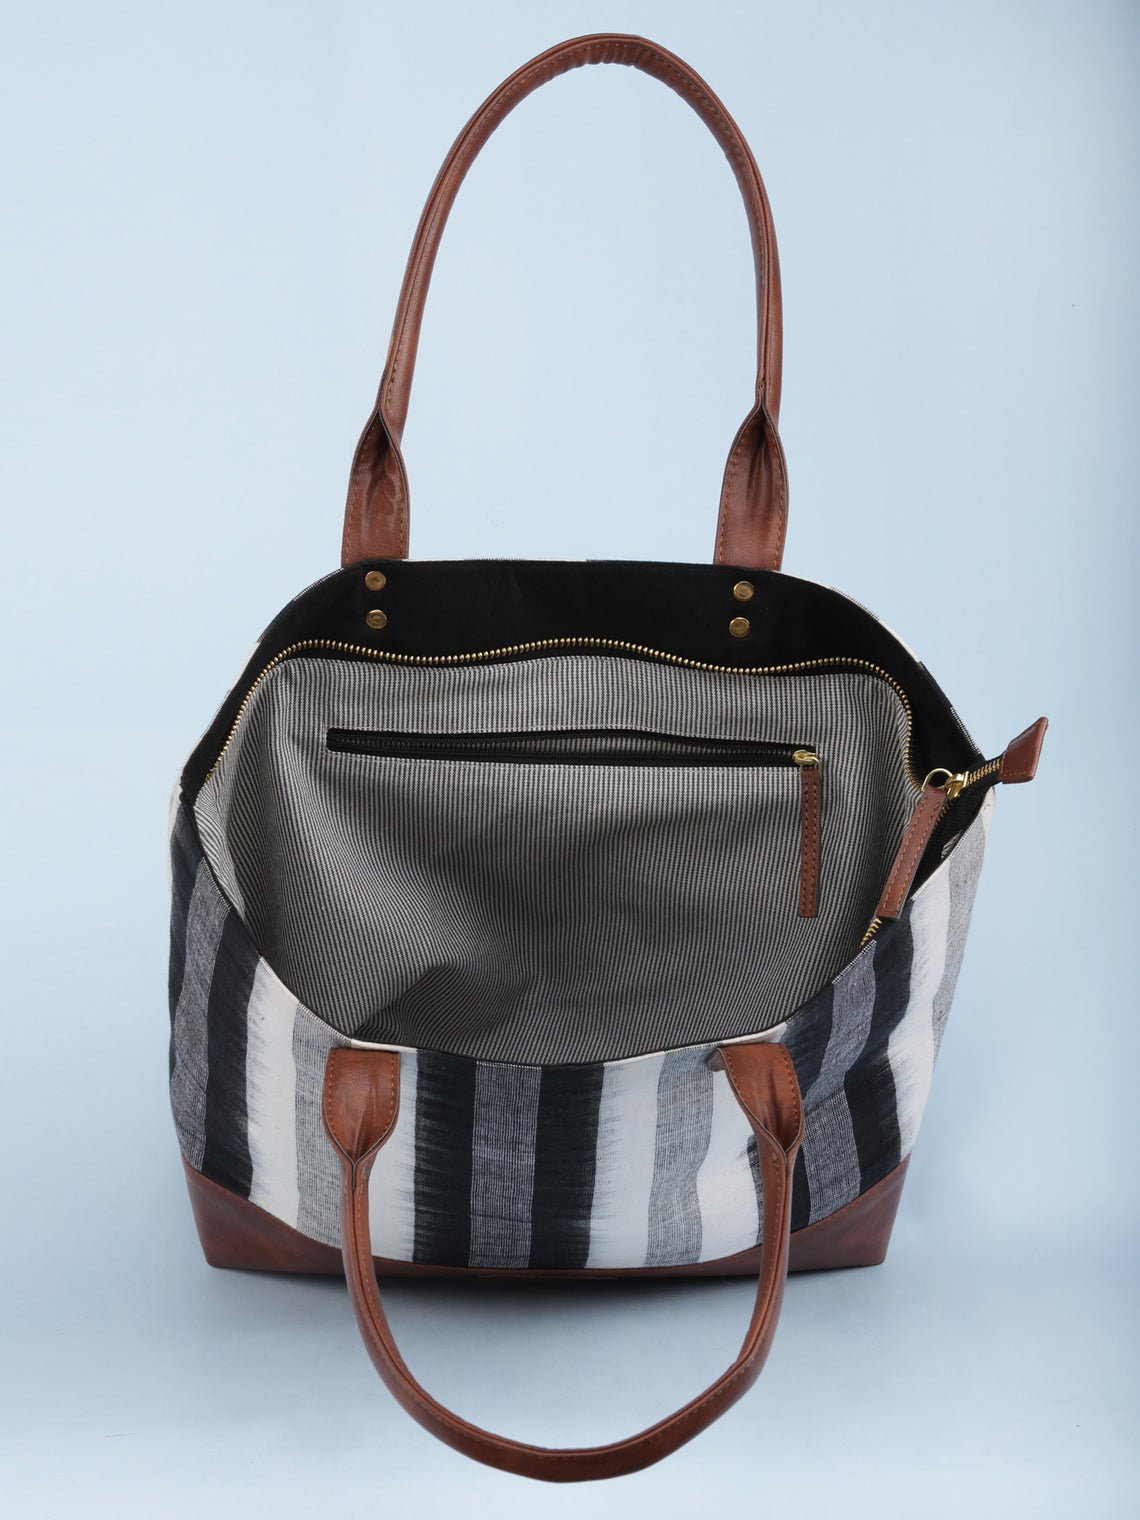 White Black Ikat & Vegan Leather Tote Bag - B1002